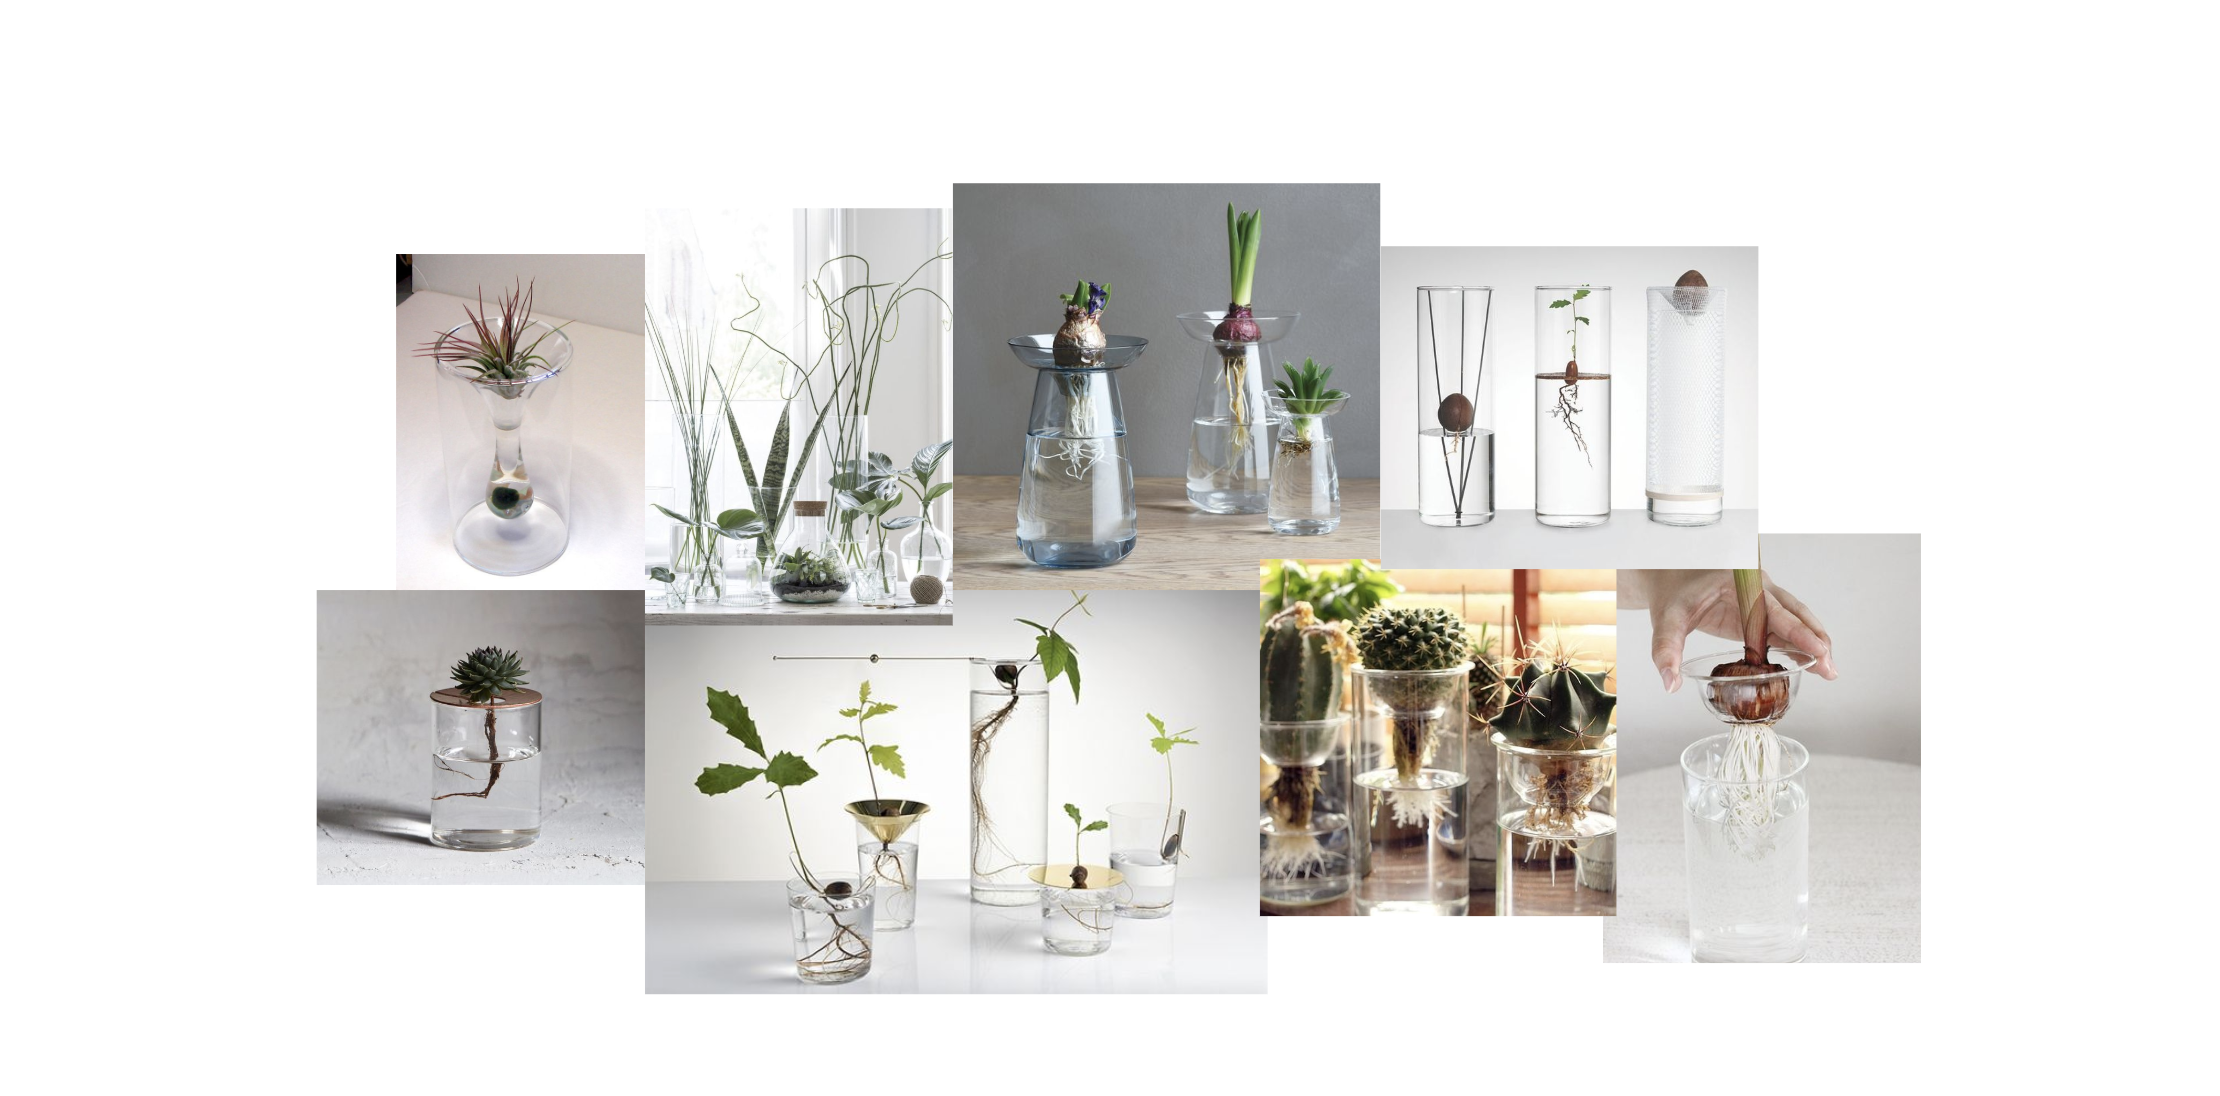 Hydroponic plant pot support inspiration images.